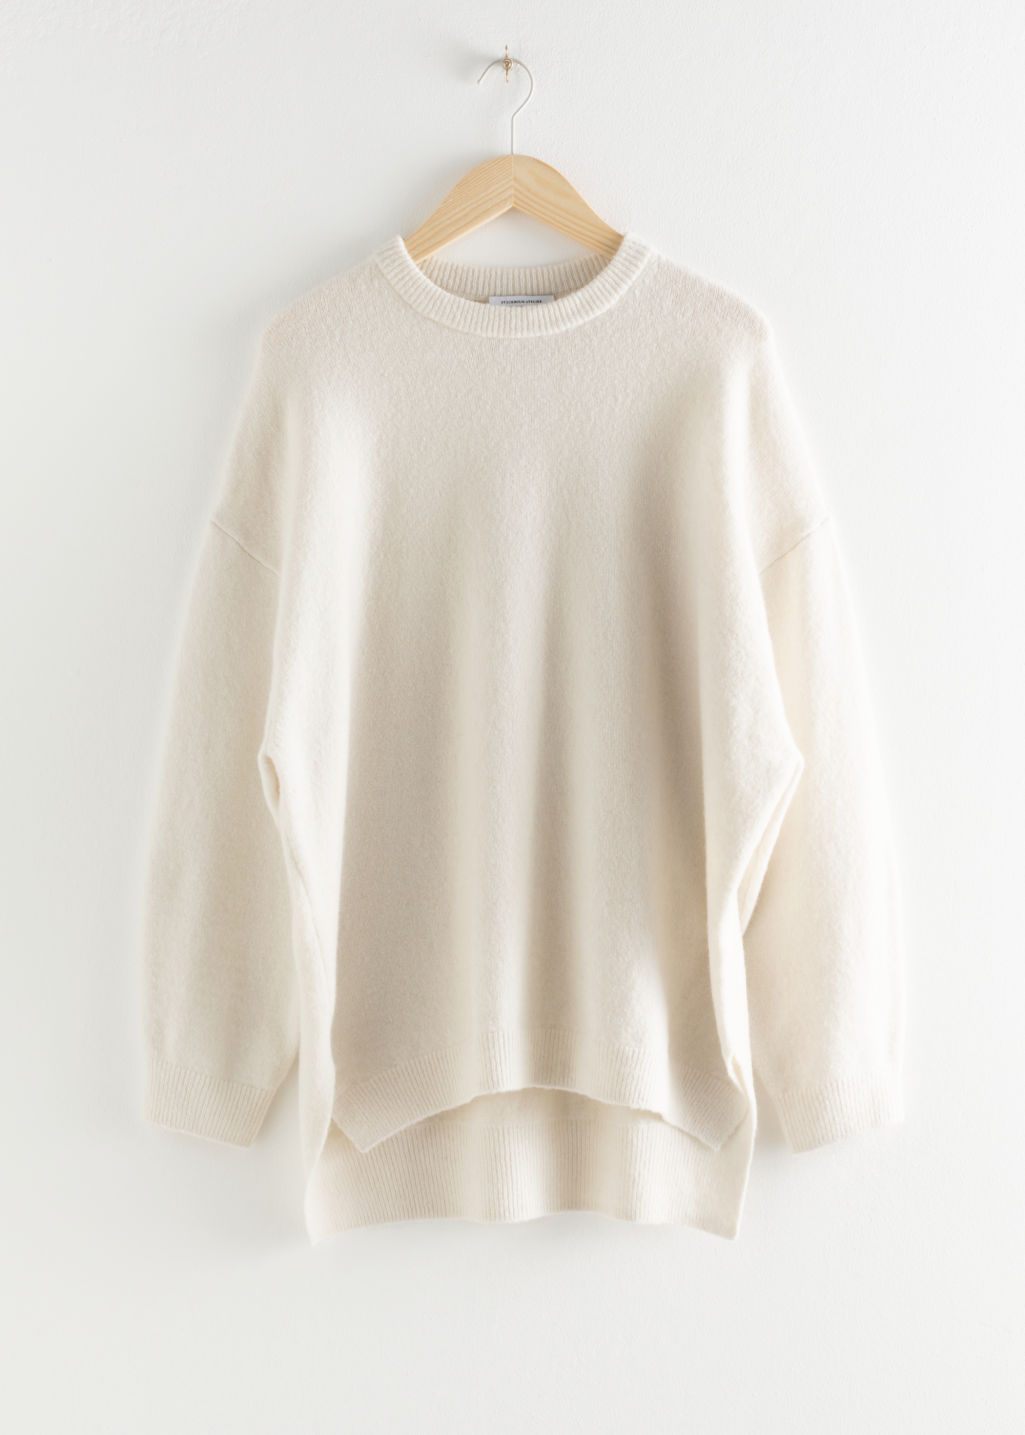 98902c359de2 Oversized Wool Blend Sweater - Off White - Sweaters -   Other Stories